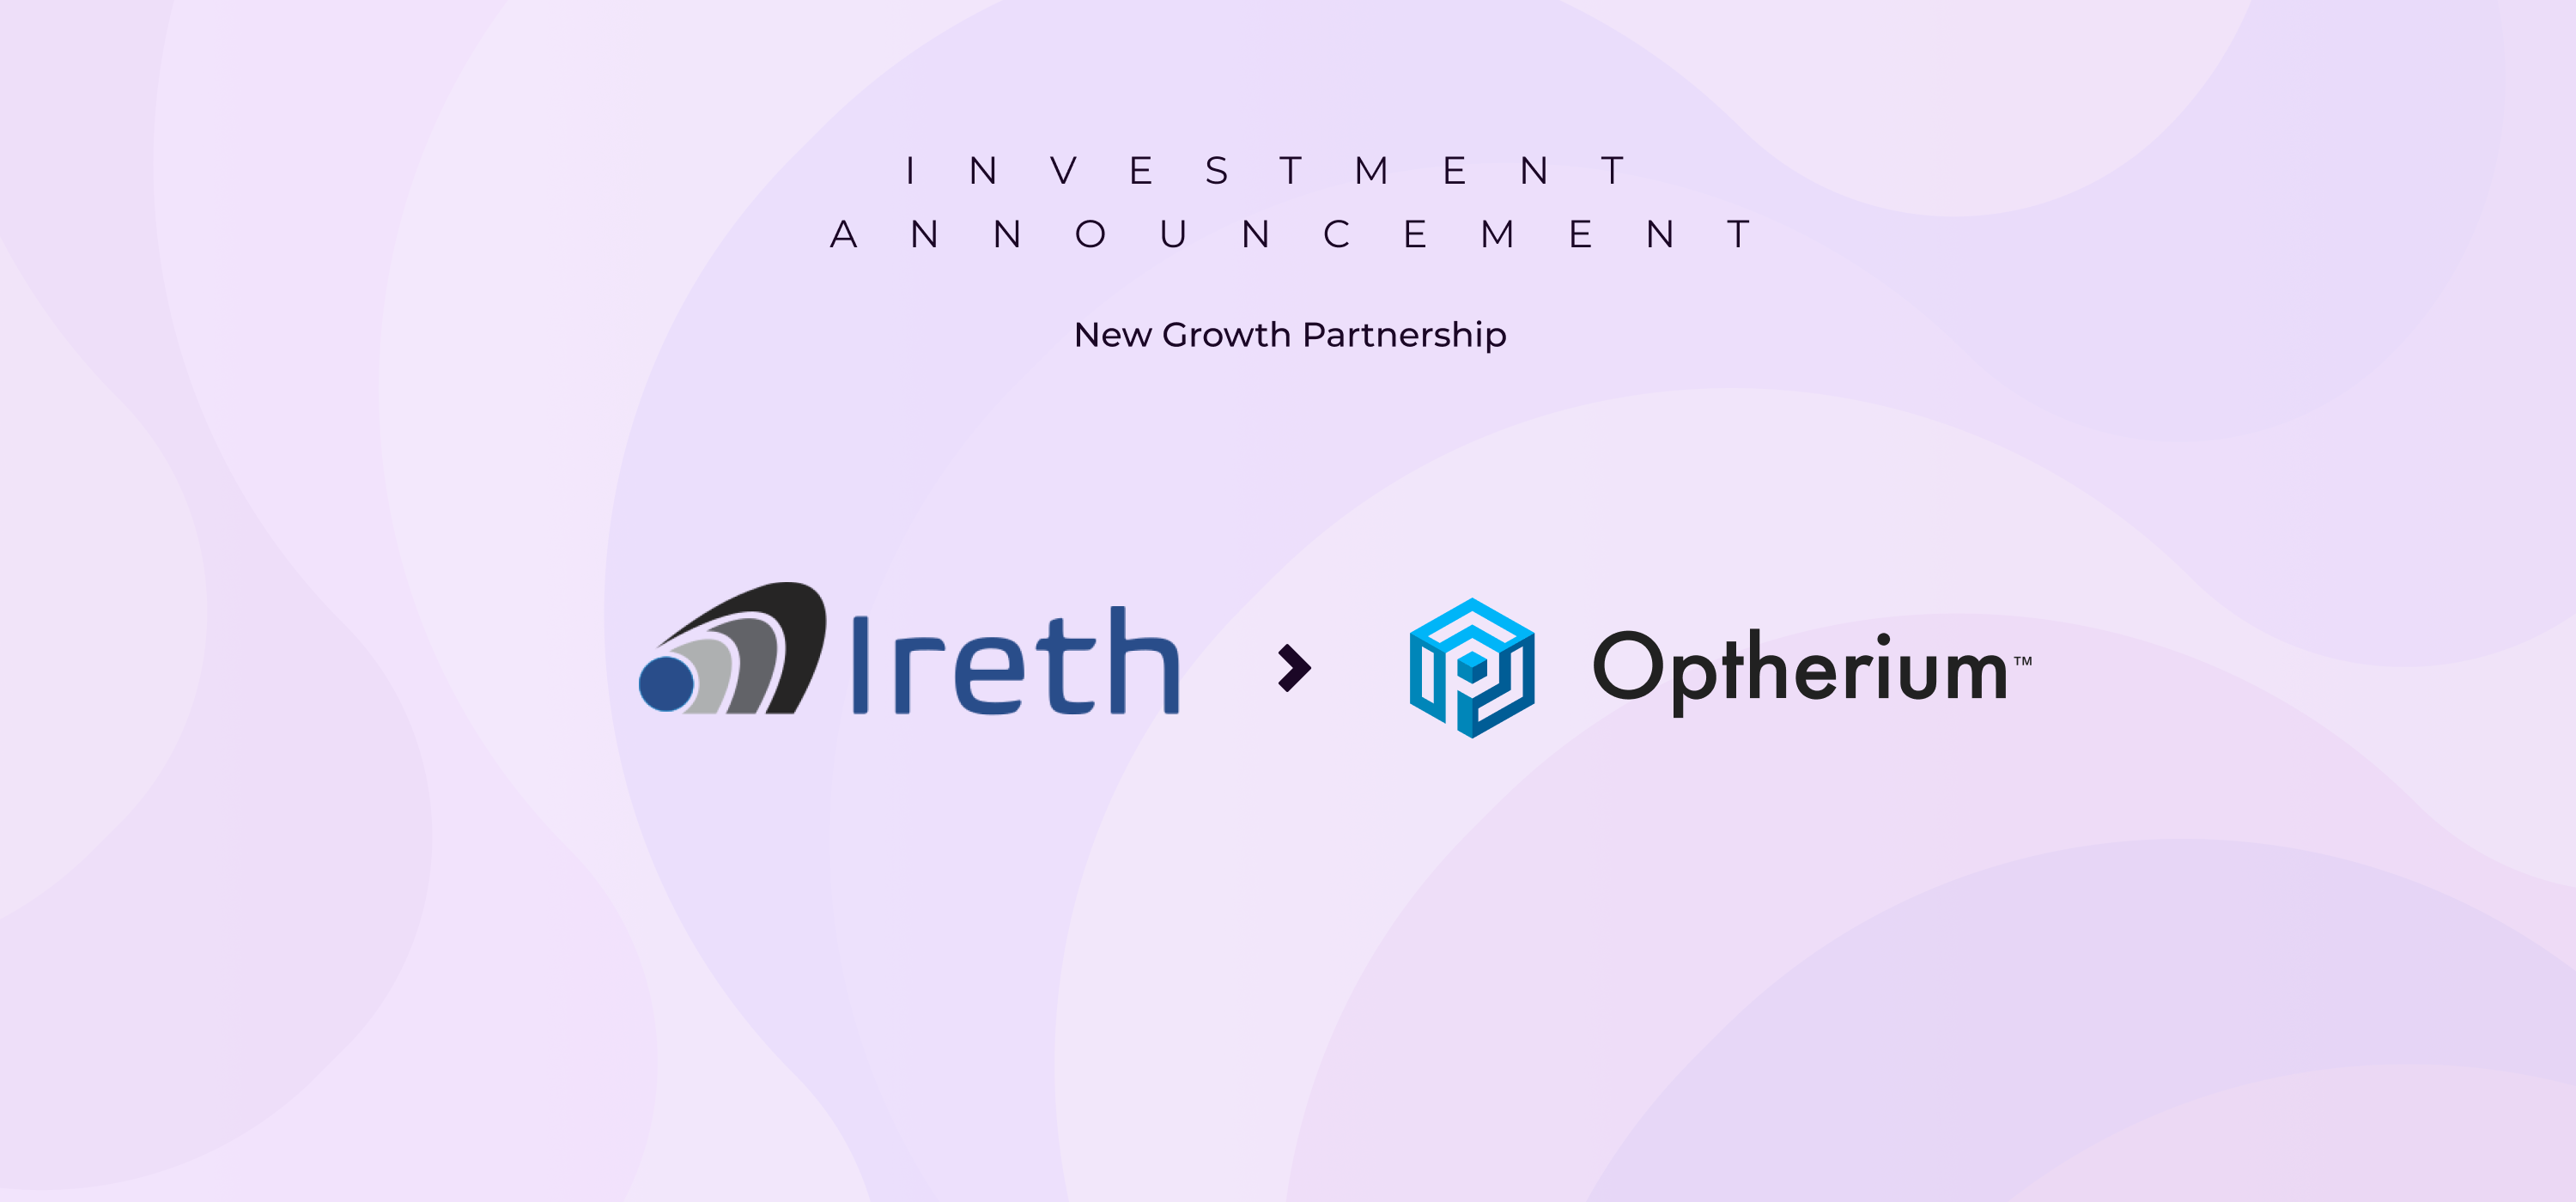 """NEW YORK — The FinTech experts at Optherium Labs reached another milestone in their efforts to revolutionize neobanking with blockchain, receiving pre-series A investment from the security experts in Italy-based IRETH. Announced on September 1st, 2021, this investment forms a strong relationship between two firms leading the way towards secure financial service delivery. Optherium Labs, operating under the Omnibek AG umbrella, provides Saas services for large financial institutions, enterprises, and startups looking to capitalize on changing consumer sentiment regarding digital banking. Their blockchain-based infrastructure brings a new level of security to the delivery of financial services at a time where data breaches and fraud are top concerns amongst consumers. IRETH, who themselves specialize in the development and delivery of secure authentication and transactions, delivered the following statement regarding the investment in OMNIBEK's FinTech platform: """"Together OMNIBEK and IRETH can offer a more complete and secure [neobanking] platform, thanks to their infrastructure as a service technology, enriched with advanced authentication and anti-fraud functionalities."""" The investment comes on the heels of an in-depth consumer survey conducted by Optherium Labs and a business partner that finds there is increasing interest amongst the public for digital-only banking services. The survey also shows that consumers are interested in developing financial relationships with non-bank institutions. With over 90% of consumers having at least one significant financial relationship with a large enterprise, and the average consumer having nearly a dozen, this partnership aims to provide companies with the security necessary to tap into an expanding client base. Considering the enhanced features that the Optherium platform provides, they are well positioned to take advantage of this expanding market through the use of their innovative solutions: A white-label neobank platform """